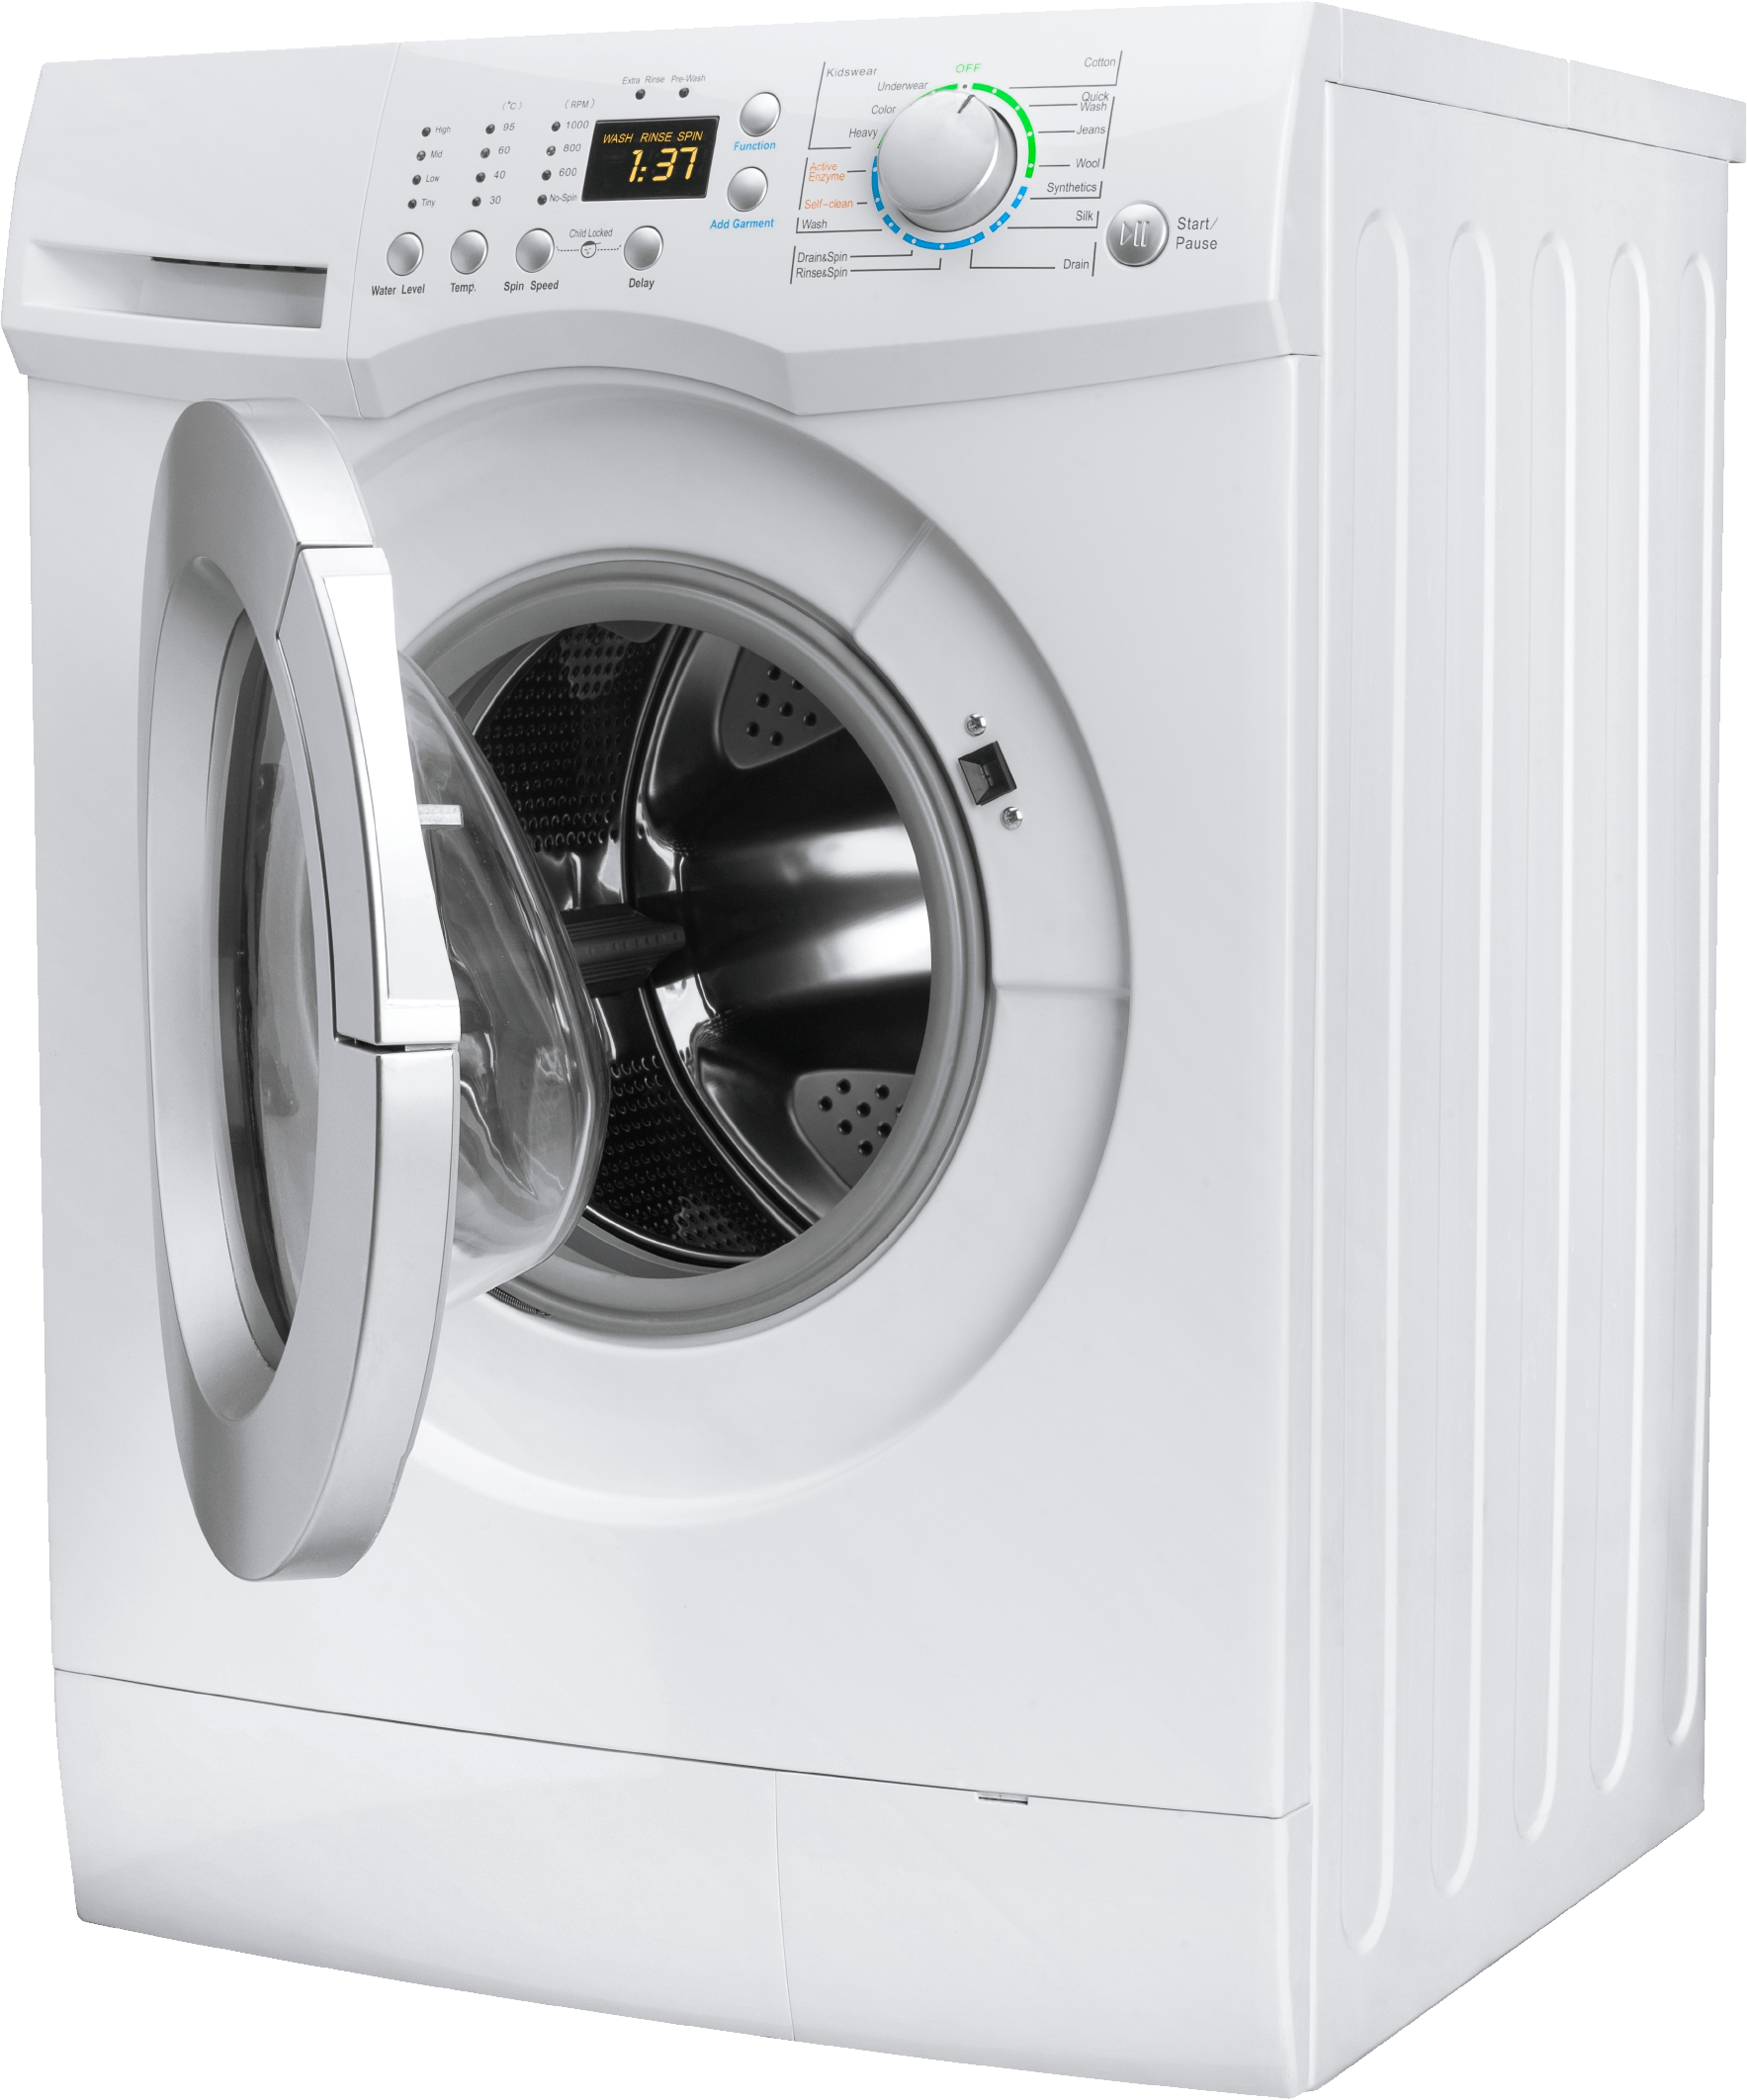 Image Machine à Laver Washing Machine Png Images